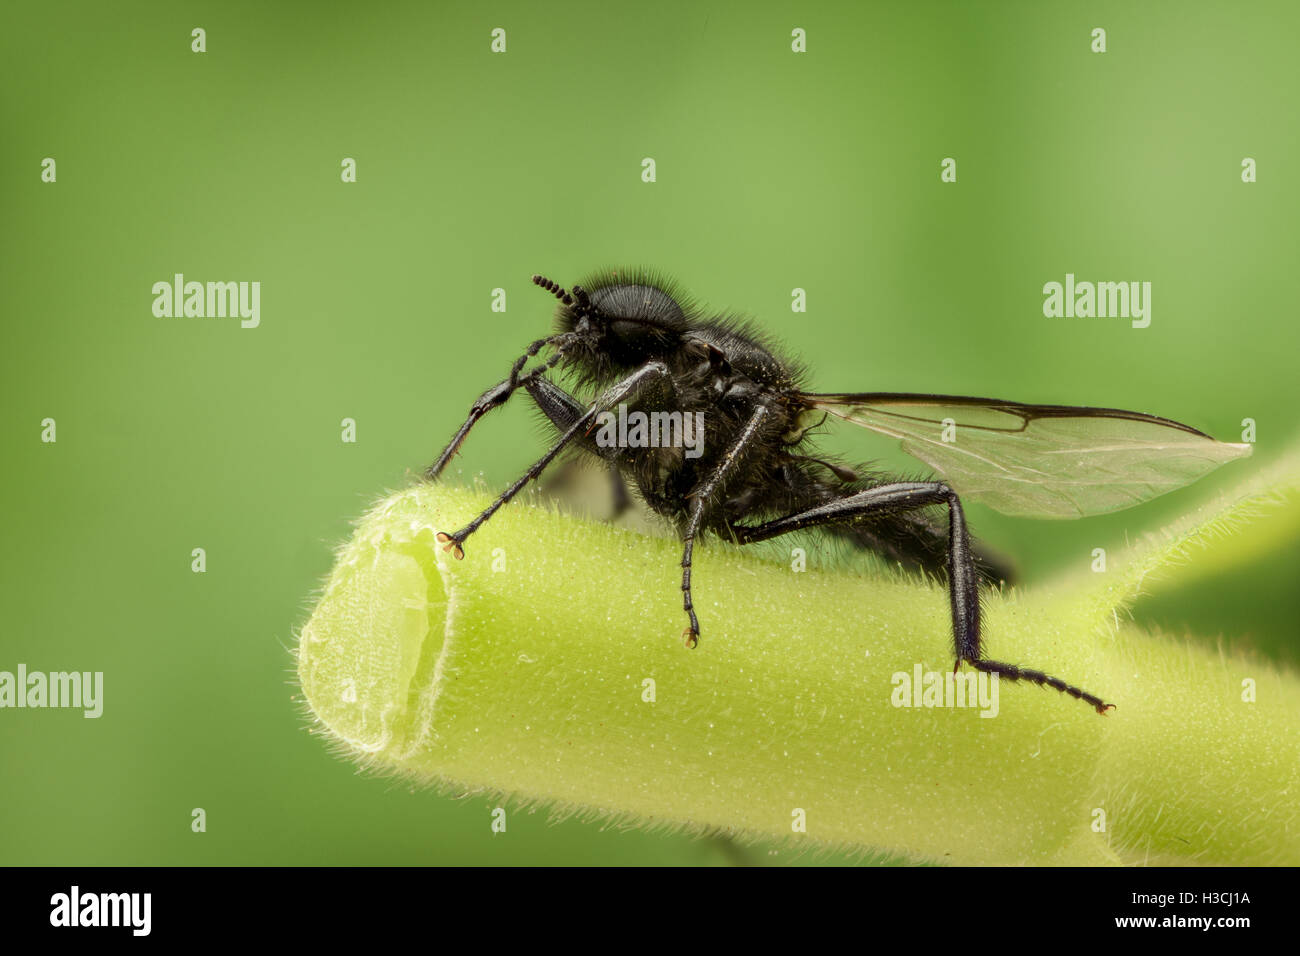 Black wasp in nature - Stock Image